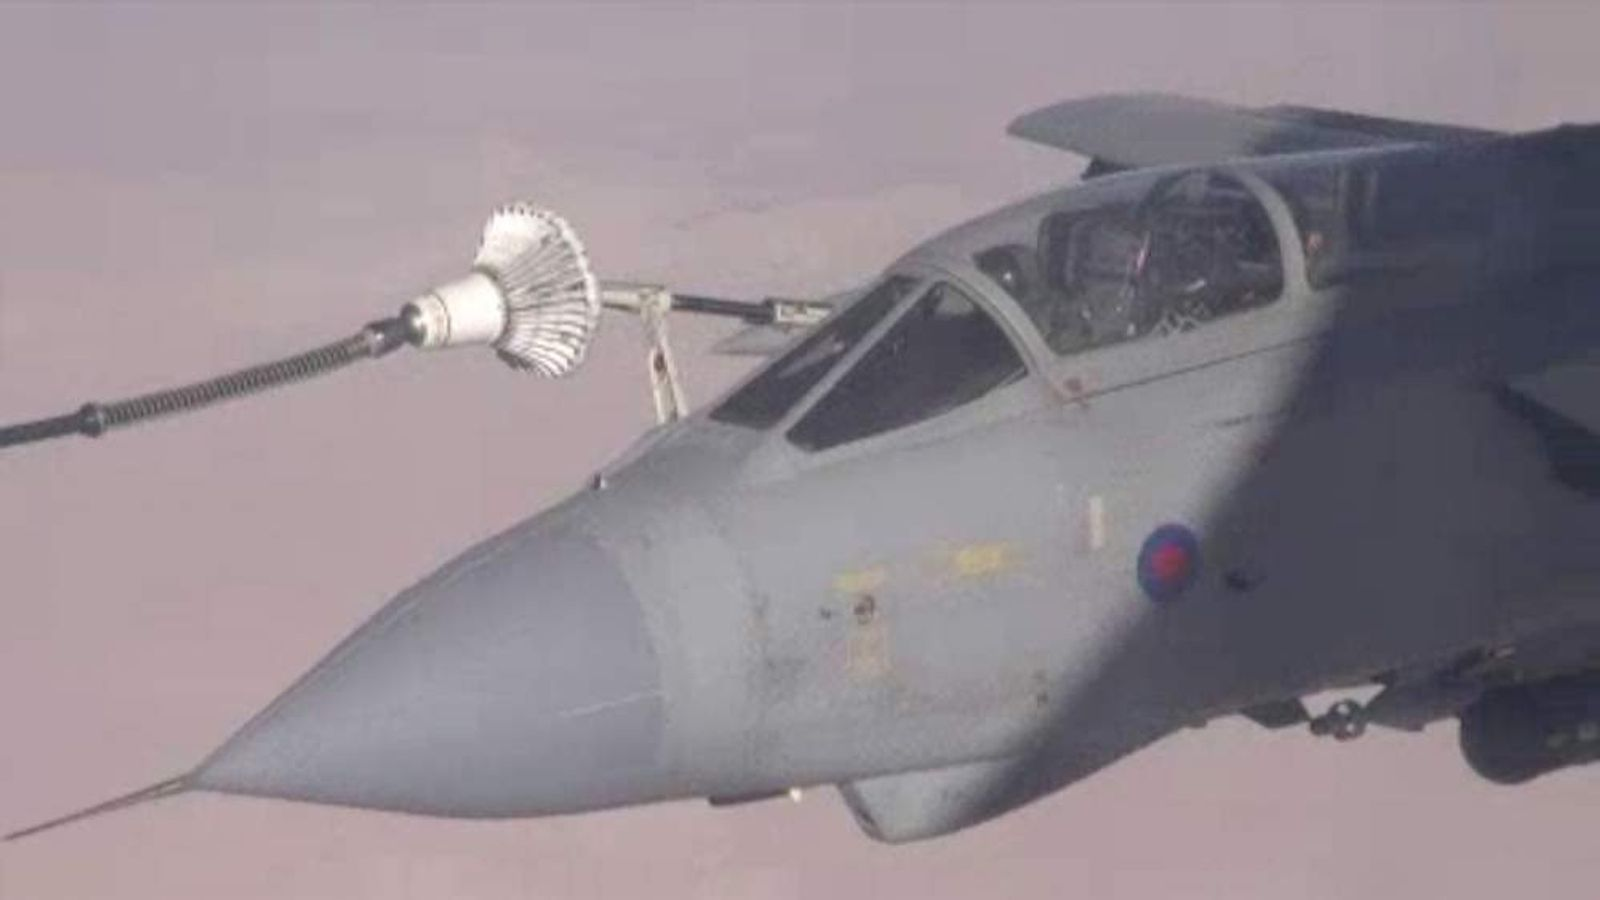 RAF Tornado GR4 refuelled during first mission of Operation Shader in Iraq